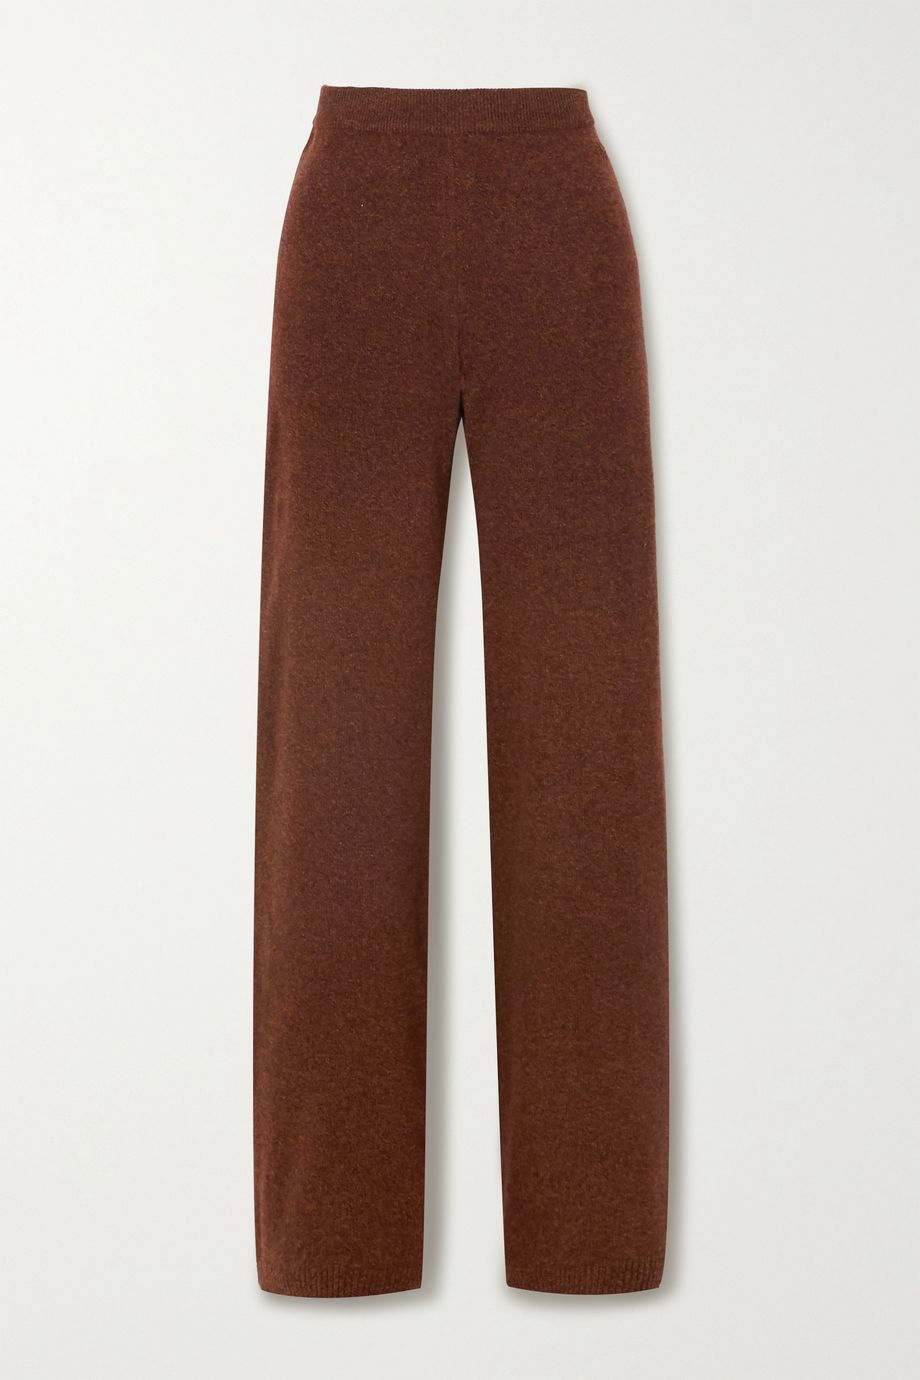 Alexandra Golovanoff Patdroit wool and cashmere-blend track pants